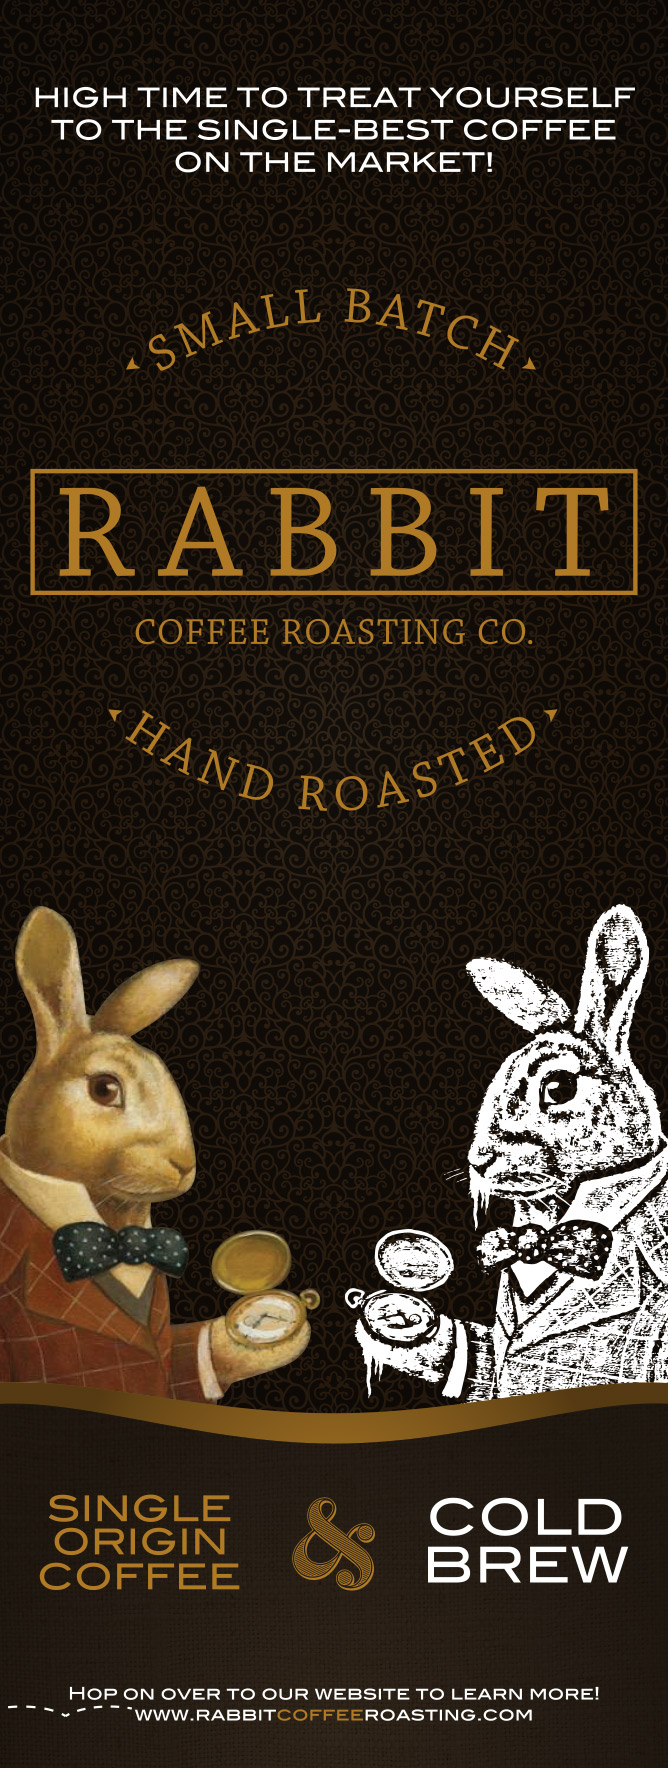 RabbitCoffee_PullOutBanner_FINAL